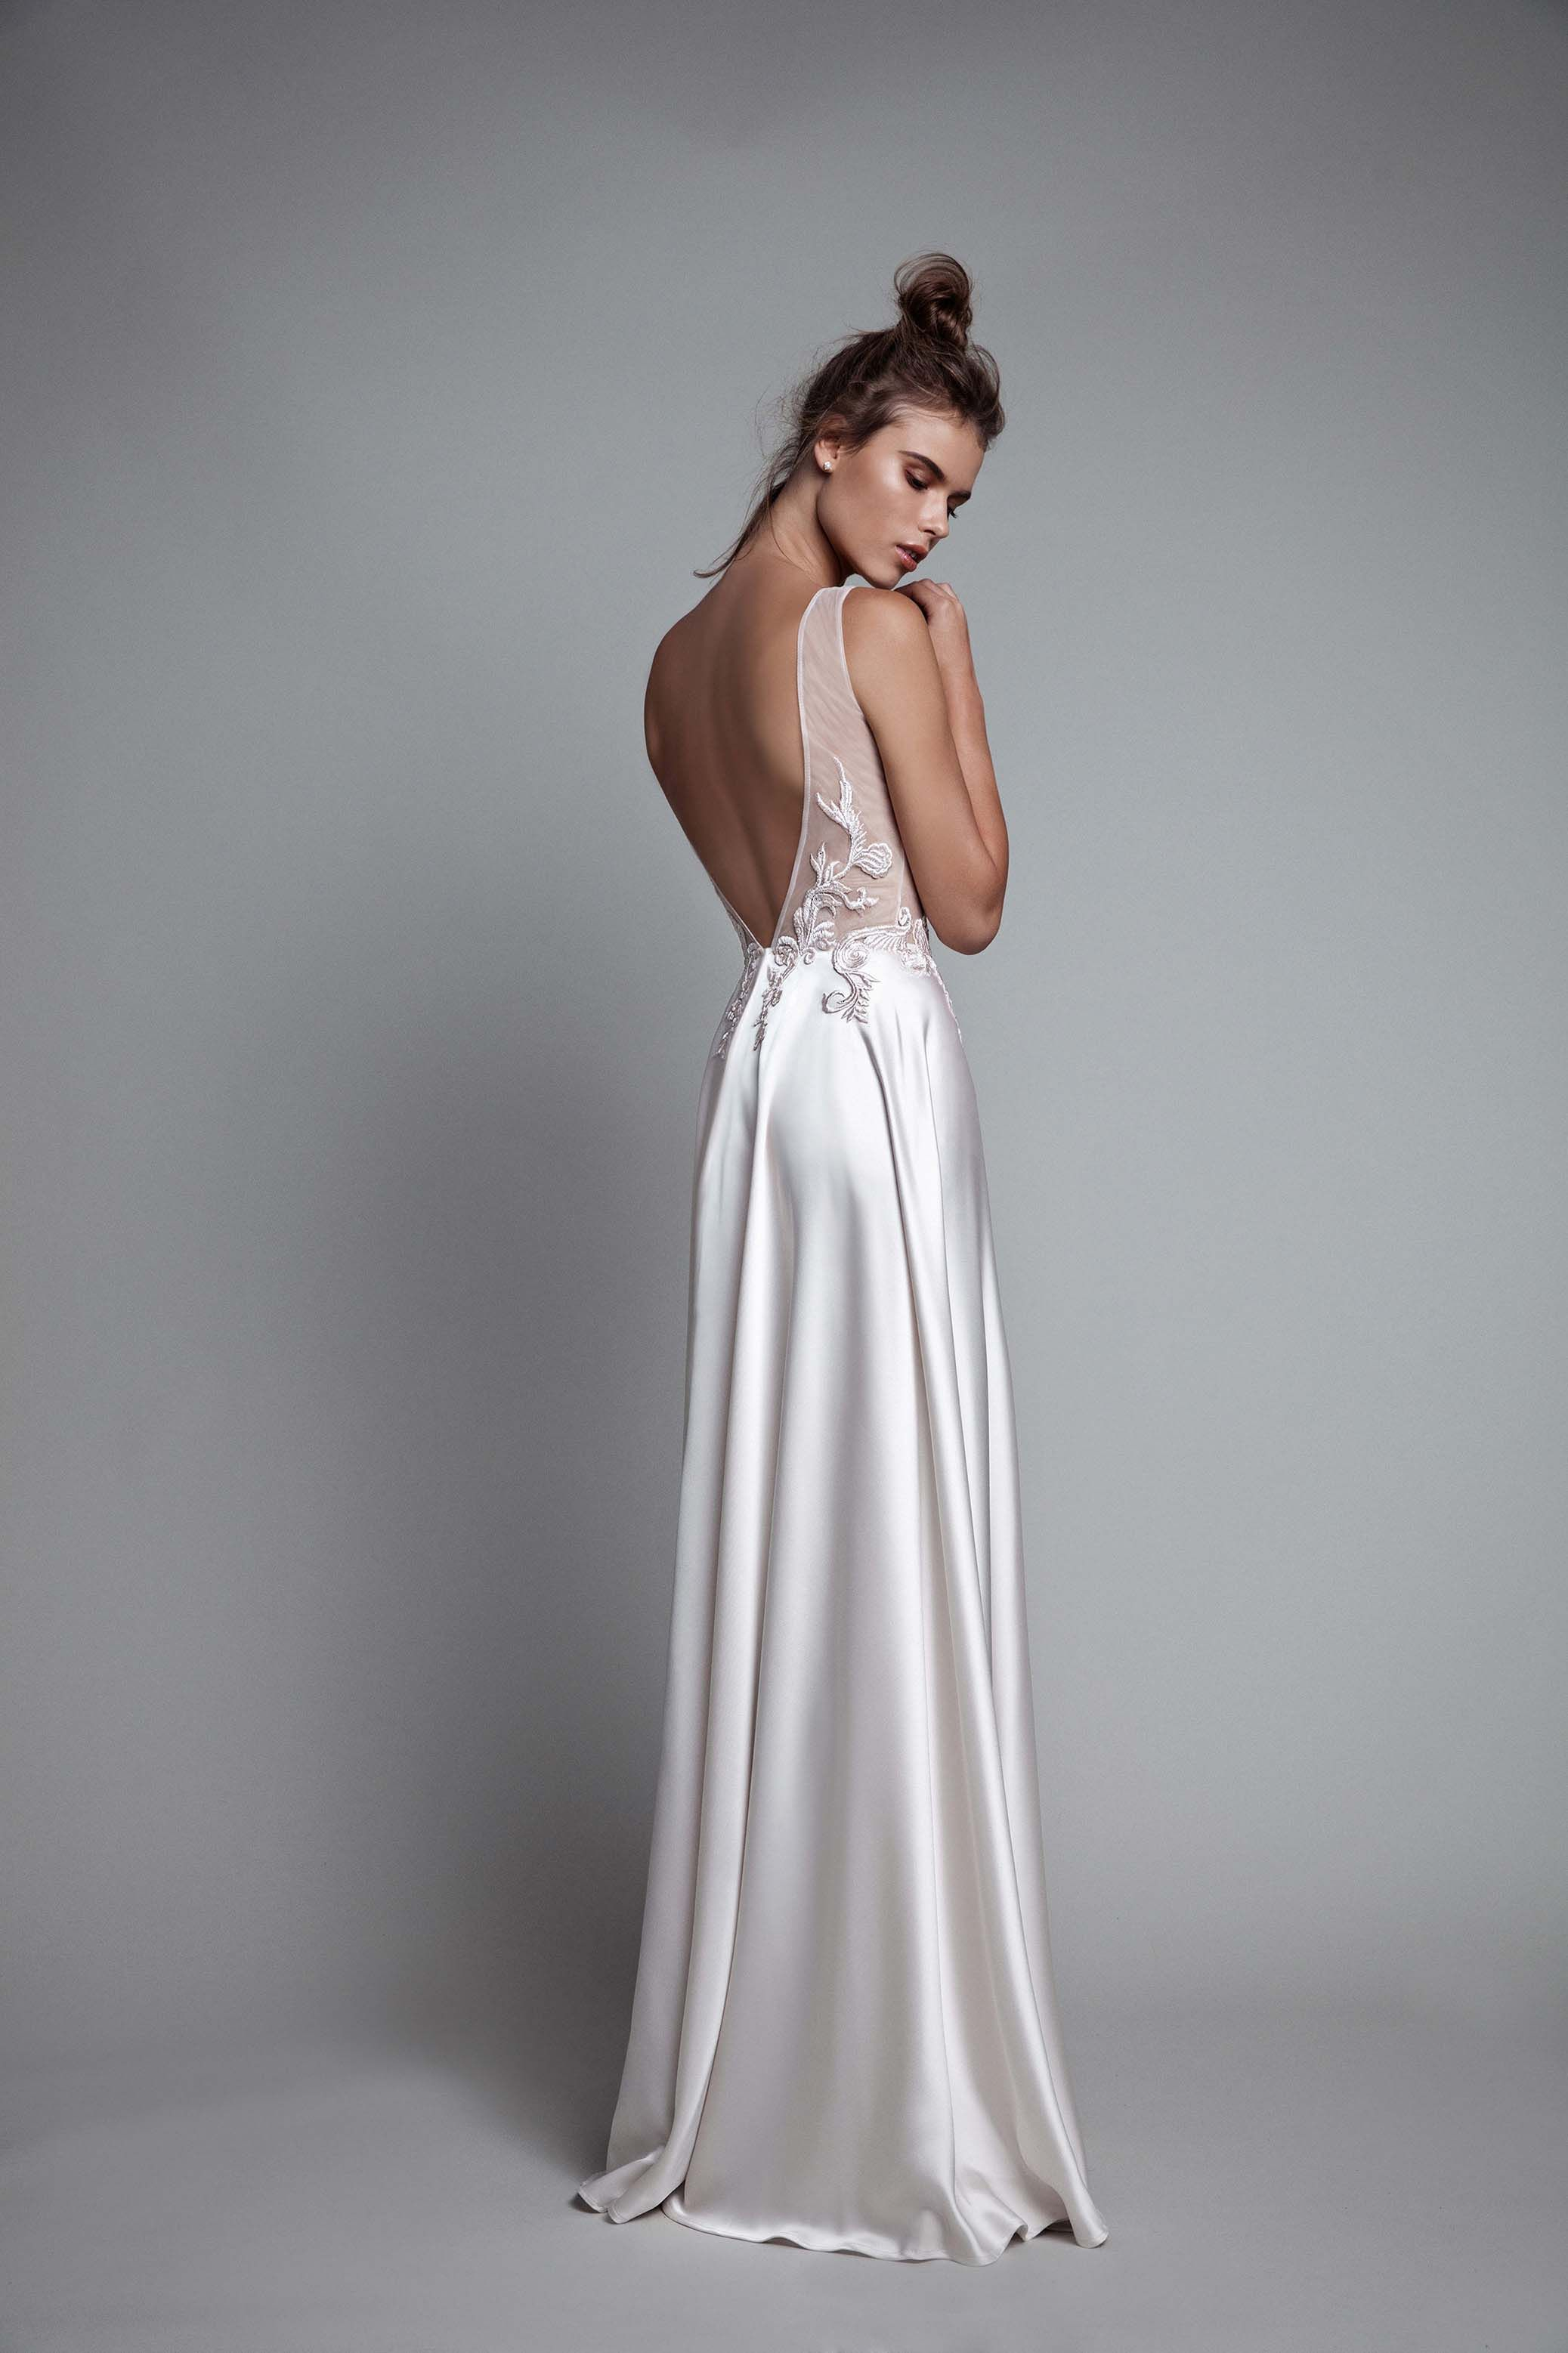 Pin by valza kryeziu on gown pinterest gowns